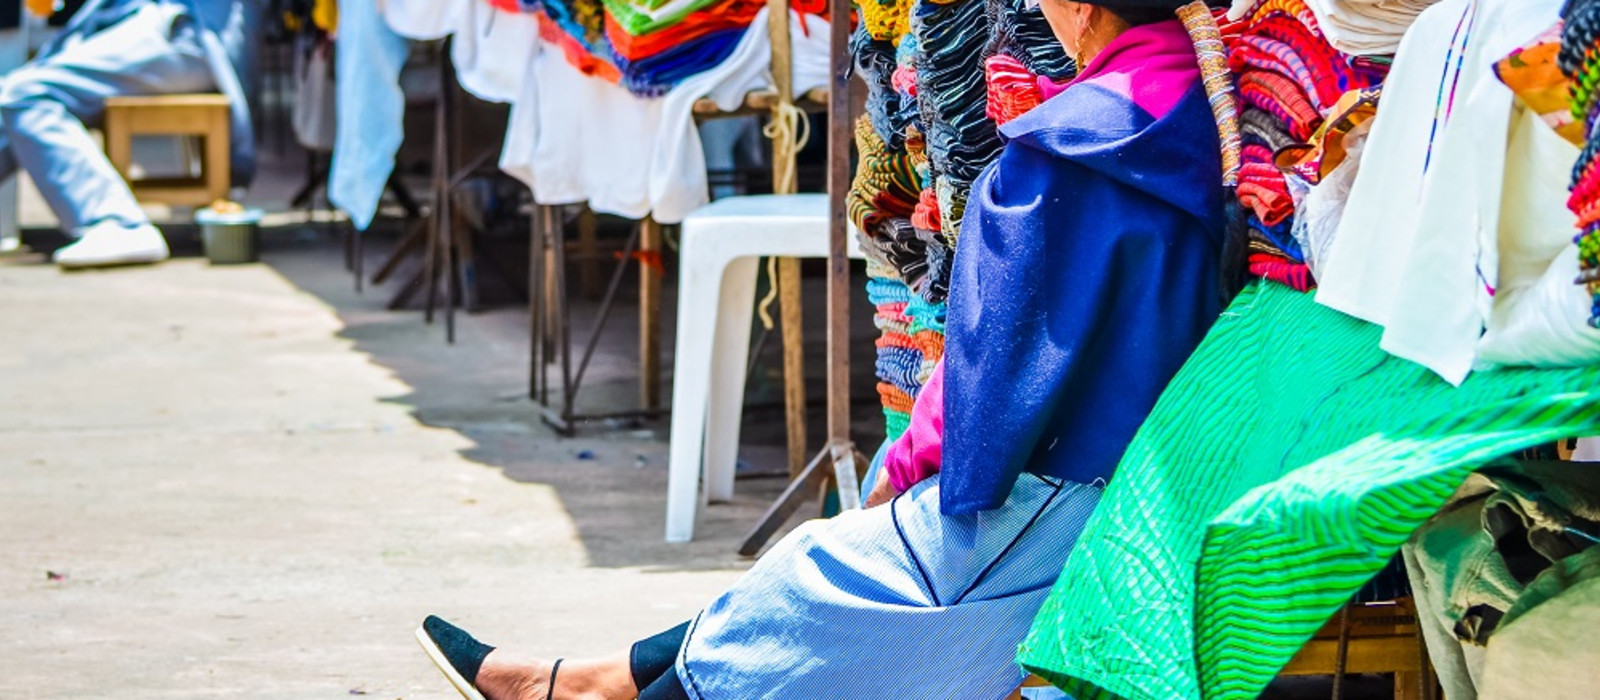 culture of Ecuador - Colorful market in Otavalo